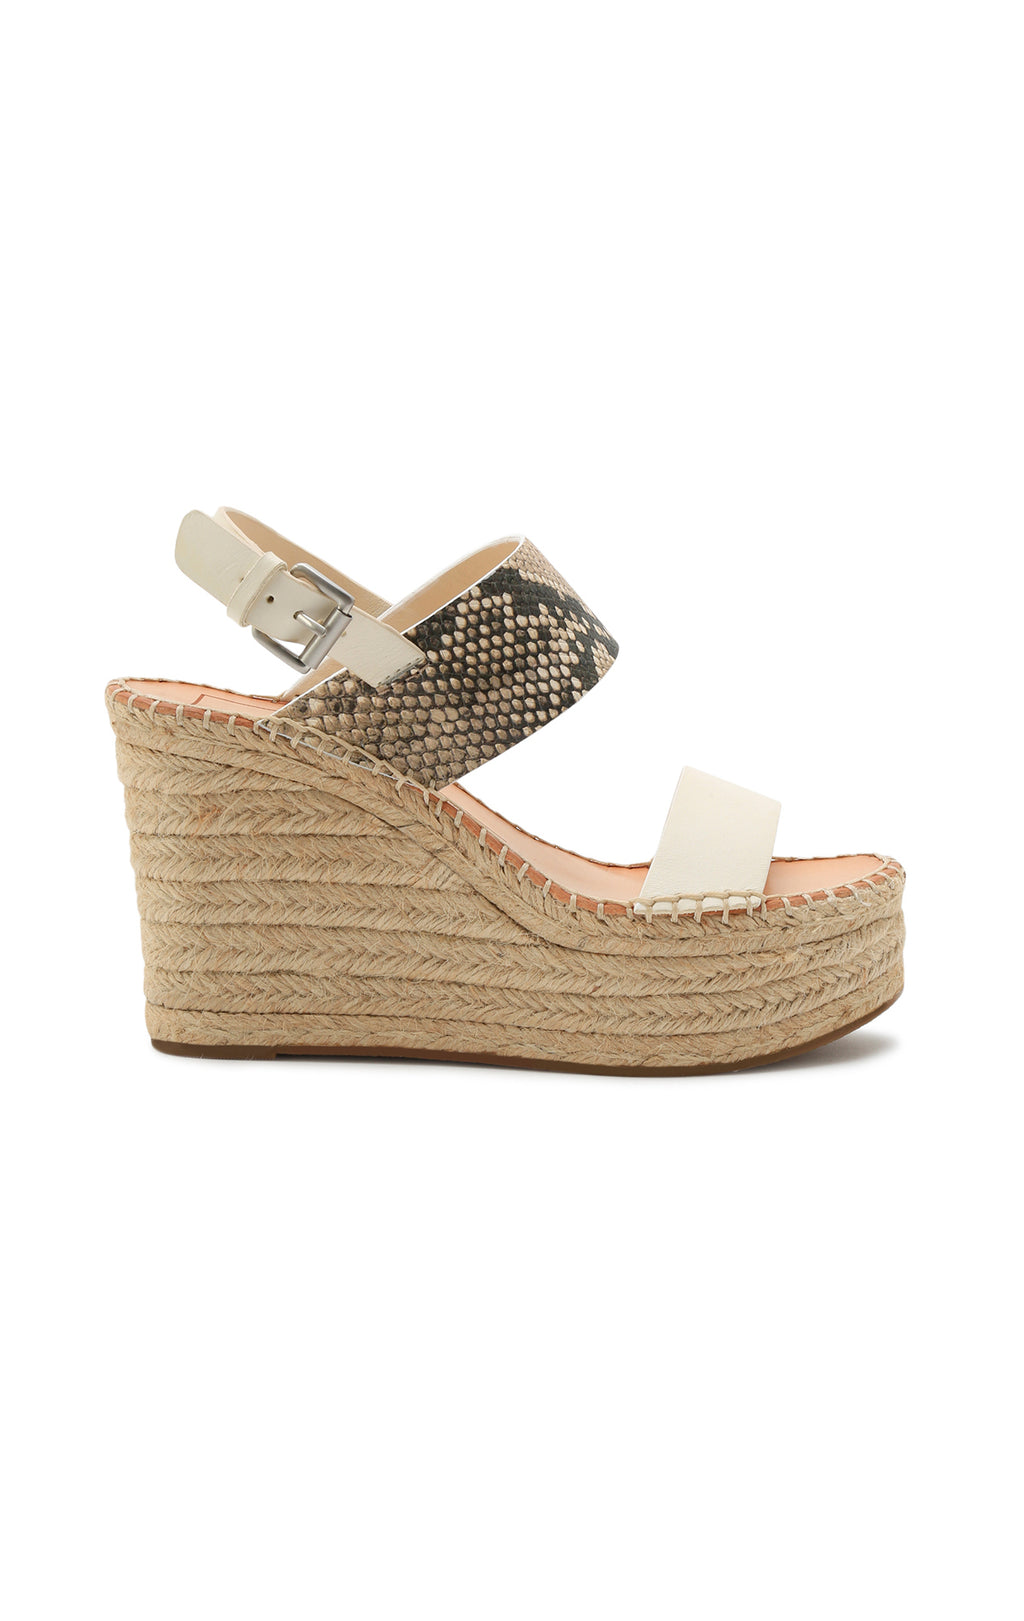 DOLCE VITA SPIRO WEDGES - SHOES